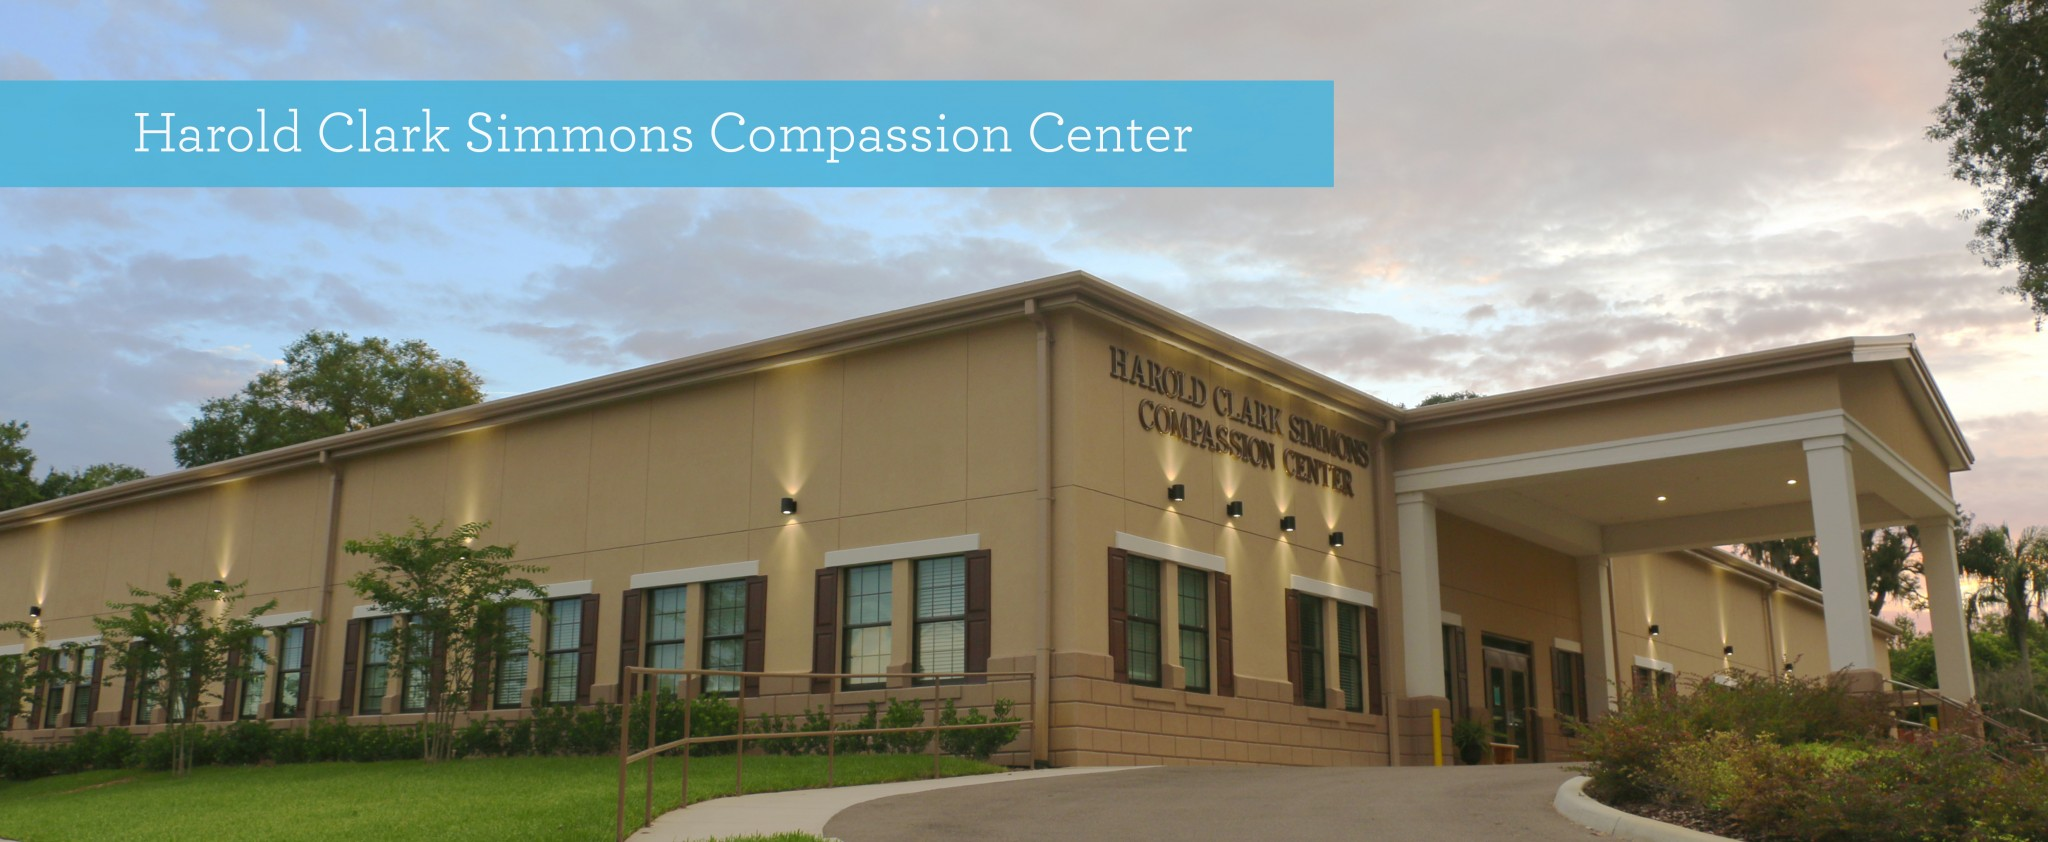 Volunteer at our Harold Clark Simmons Compassion Center